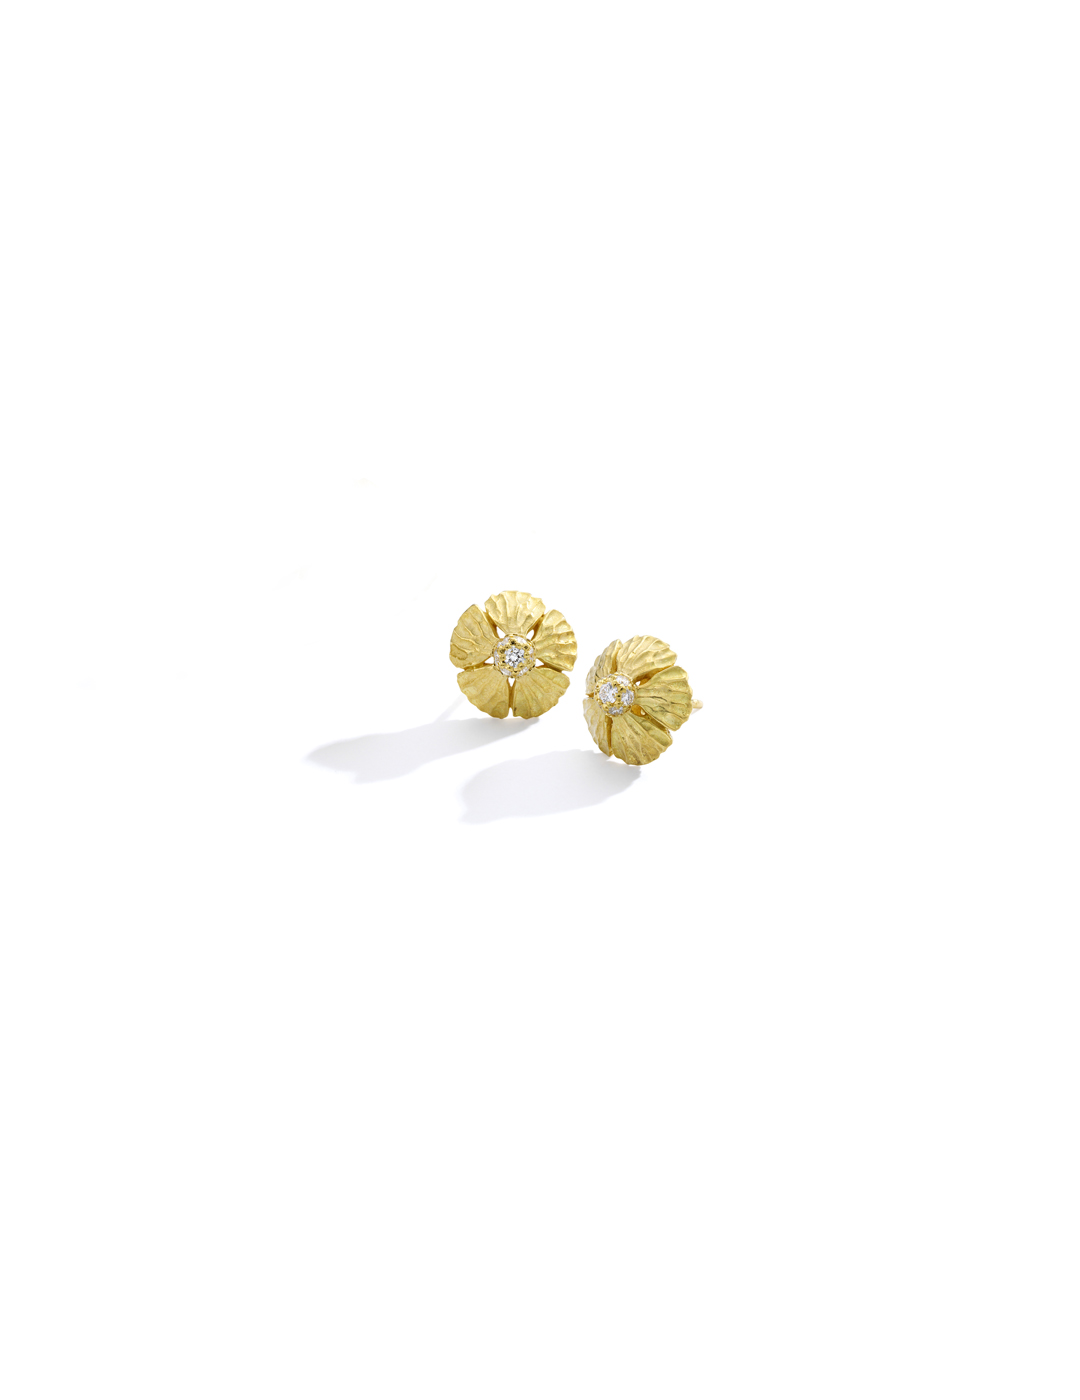 mish_products_earrings_StrawFlwr-Dome-Med Stud-ER-1